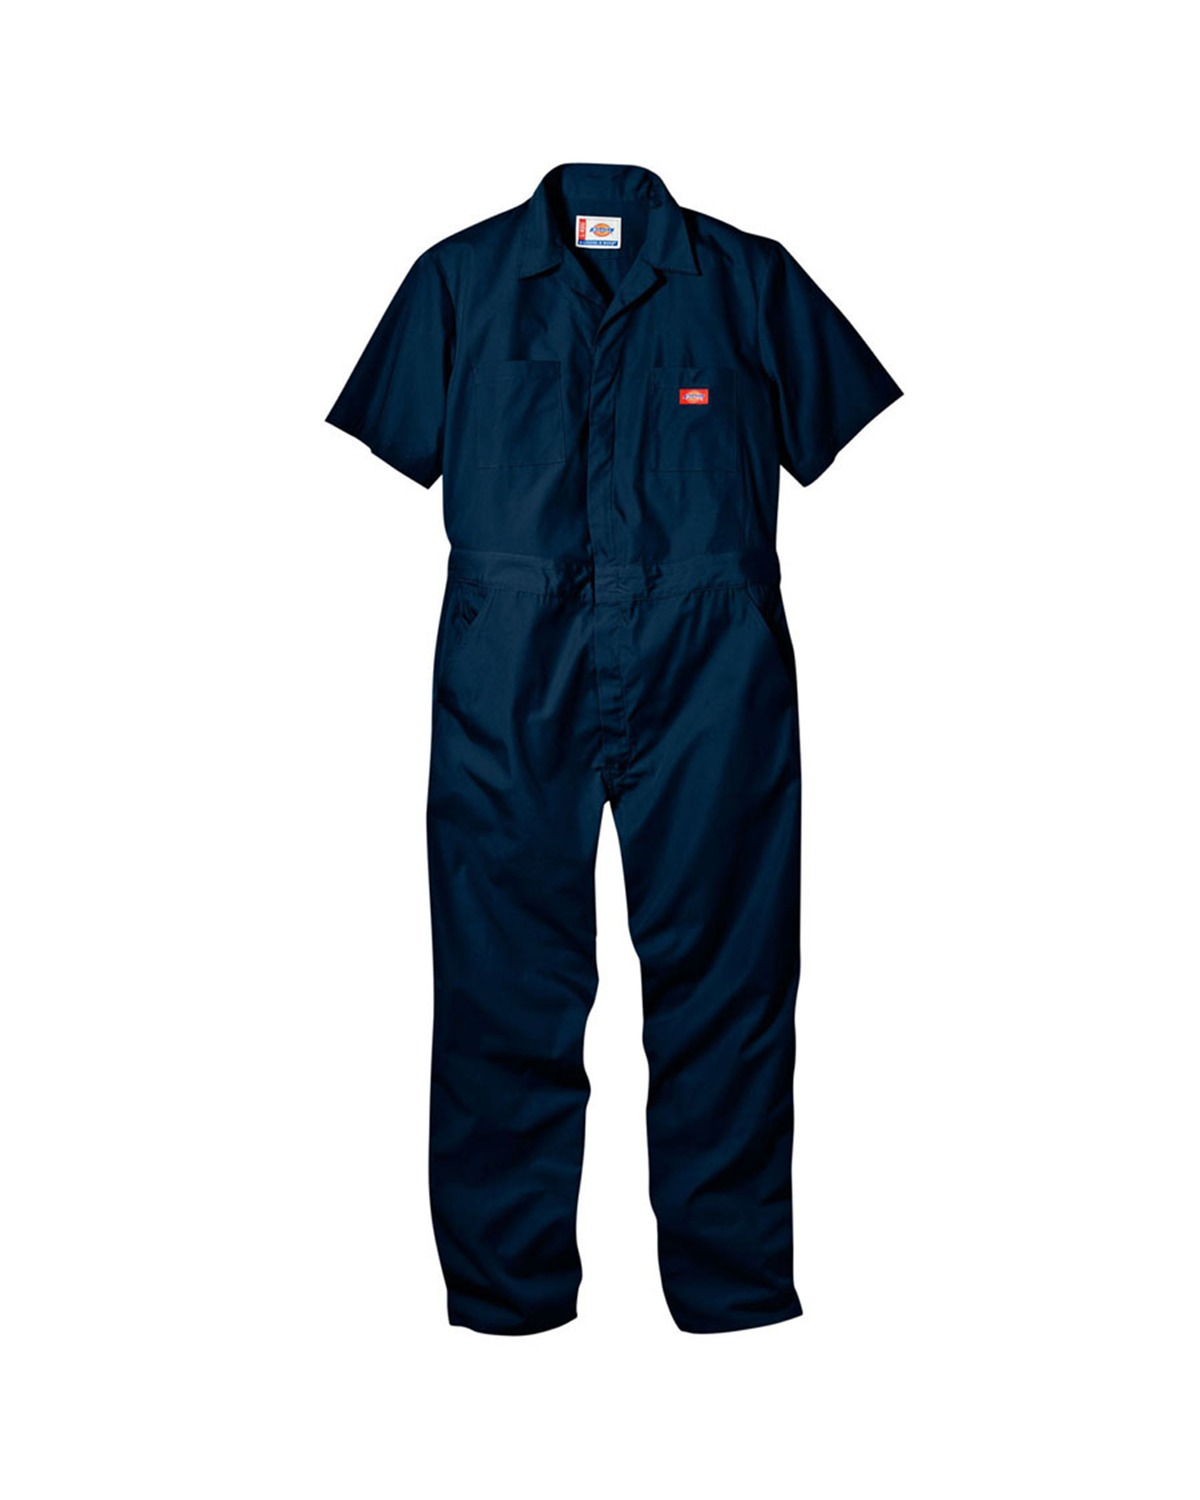 Men's 5 oz. Short-Sleeve Coverall